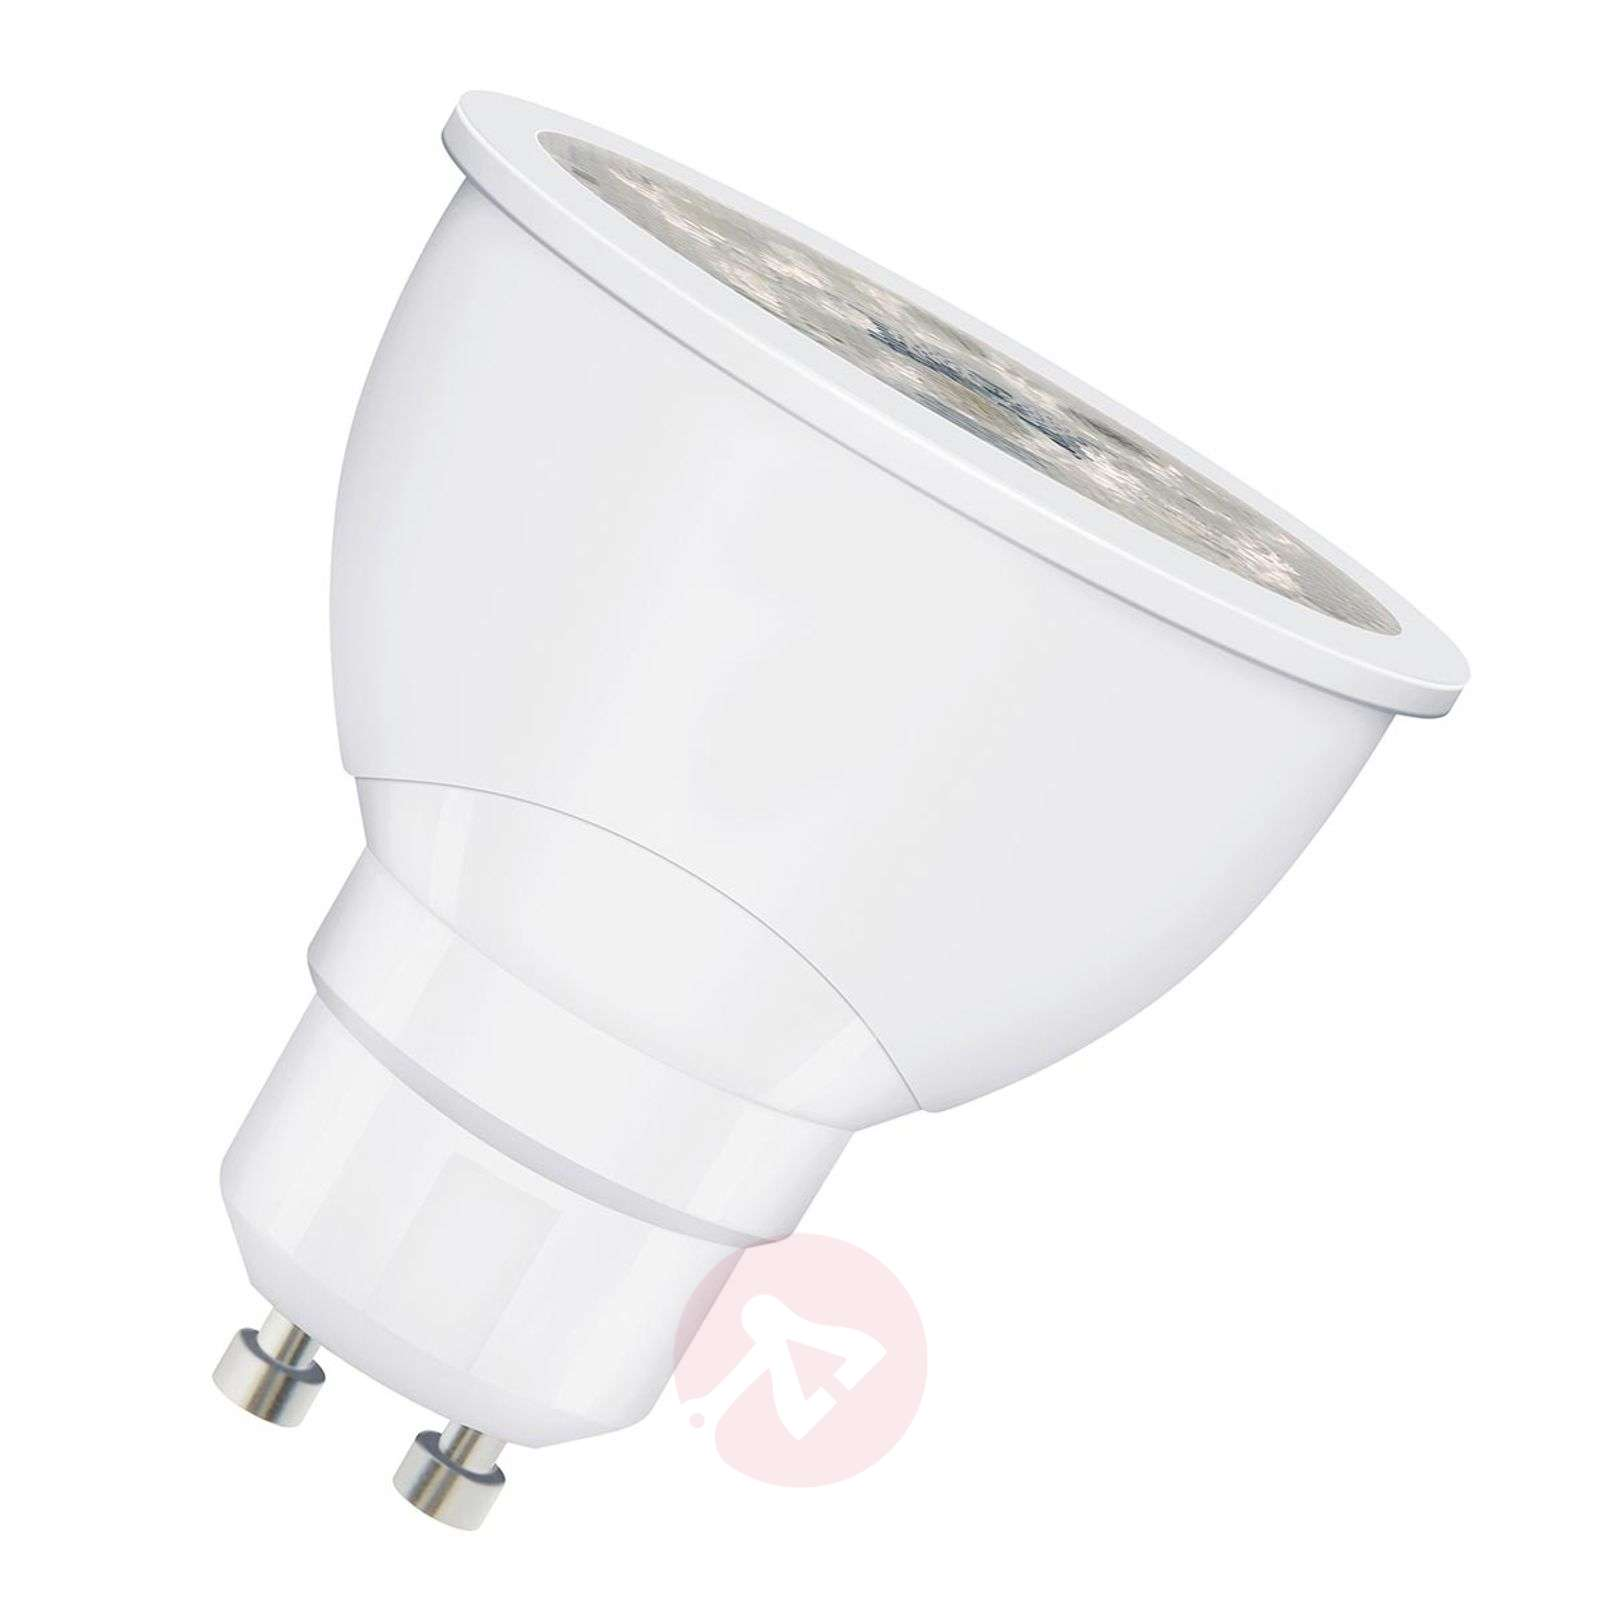 SMART+ GU10 4,5W Tuneable White, 350lm, dimmable-7262127-01